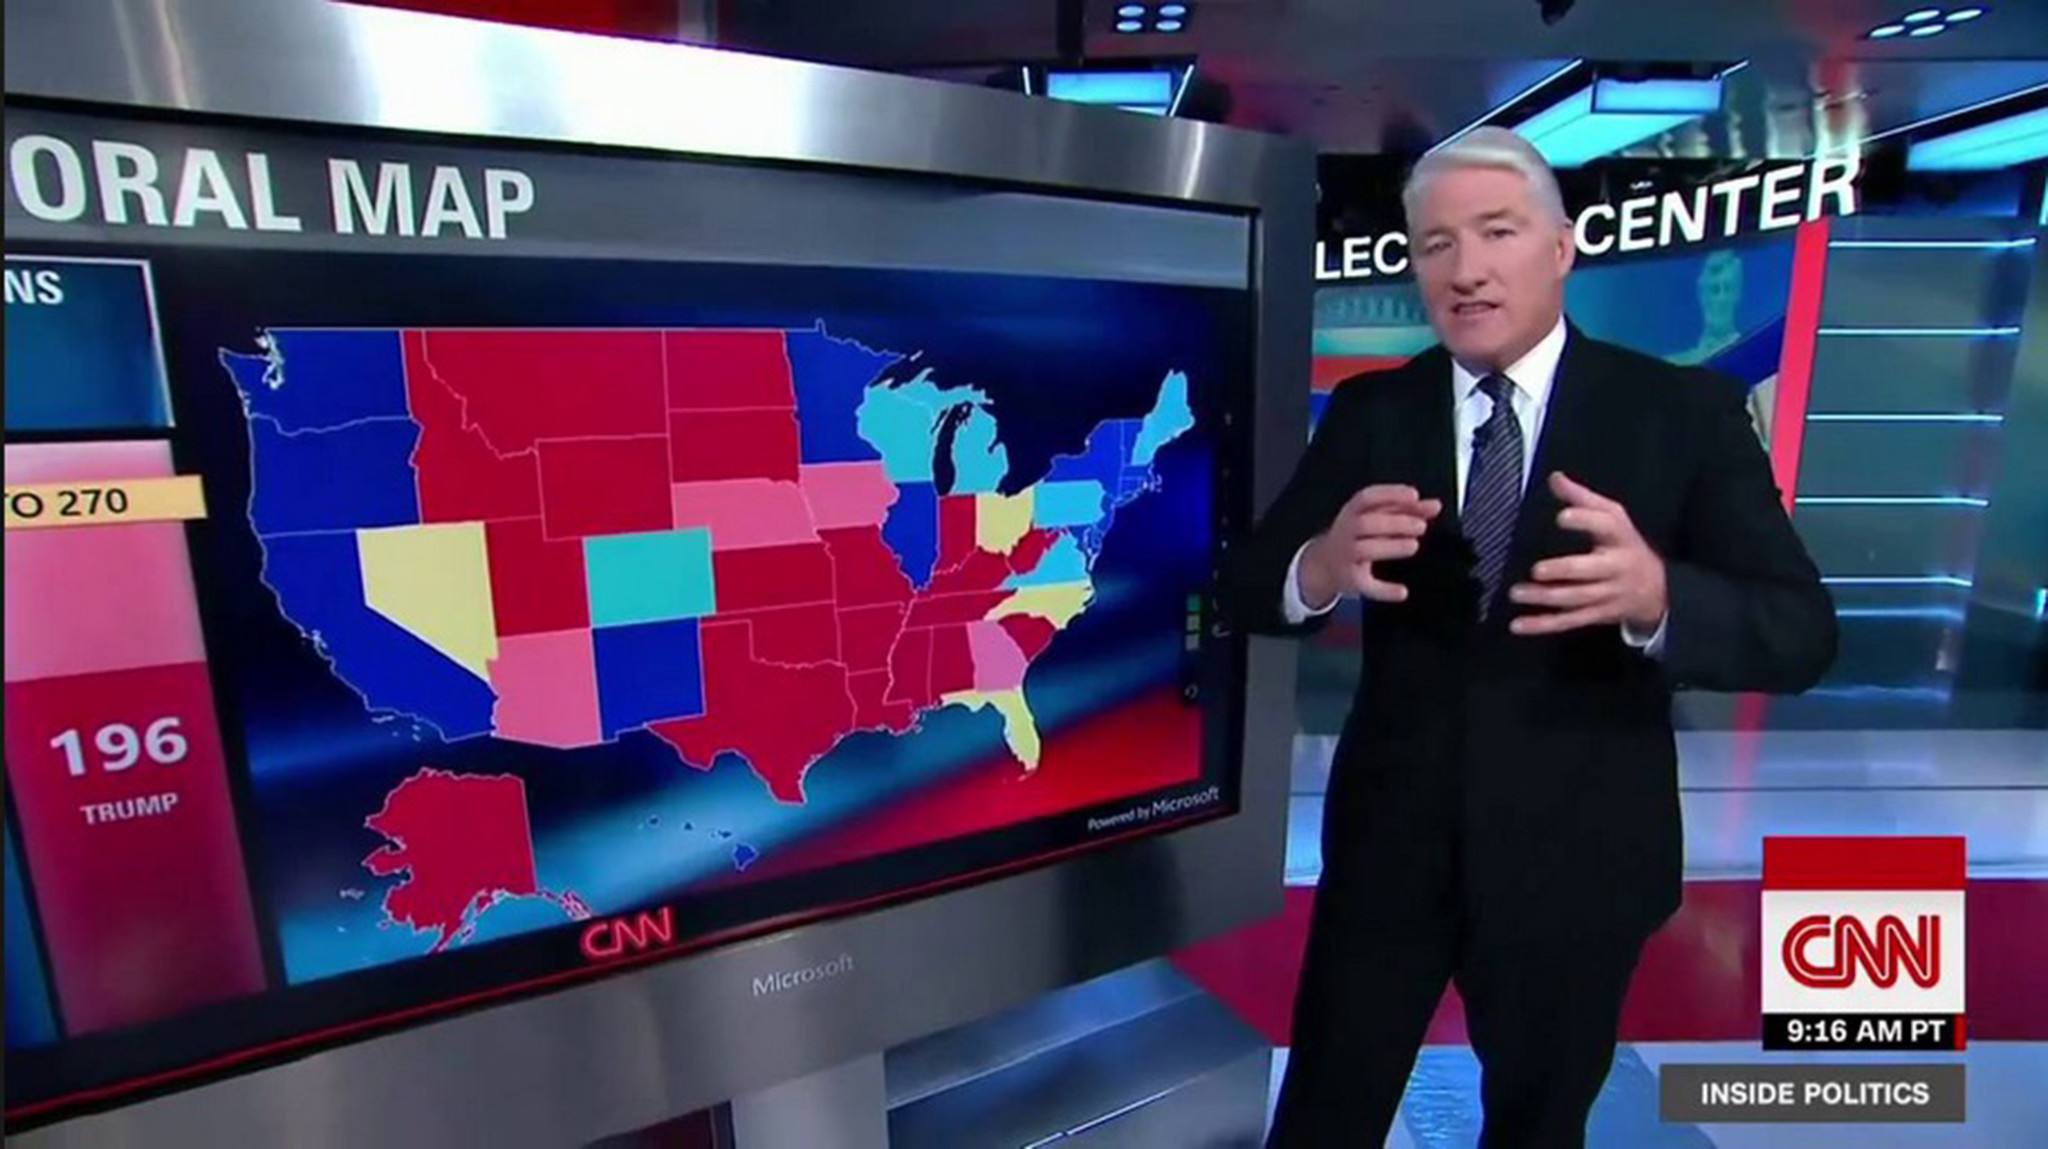 John King in the CNN newsroom going over the electoral map for the 2016 presidential election.